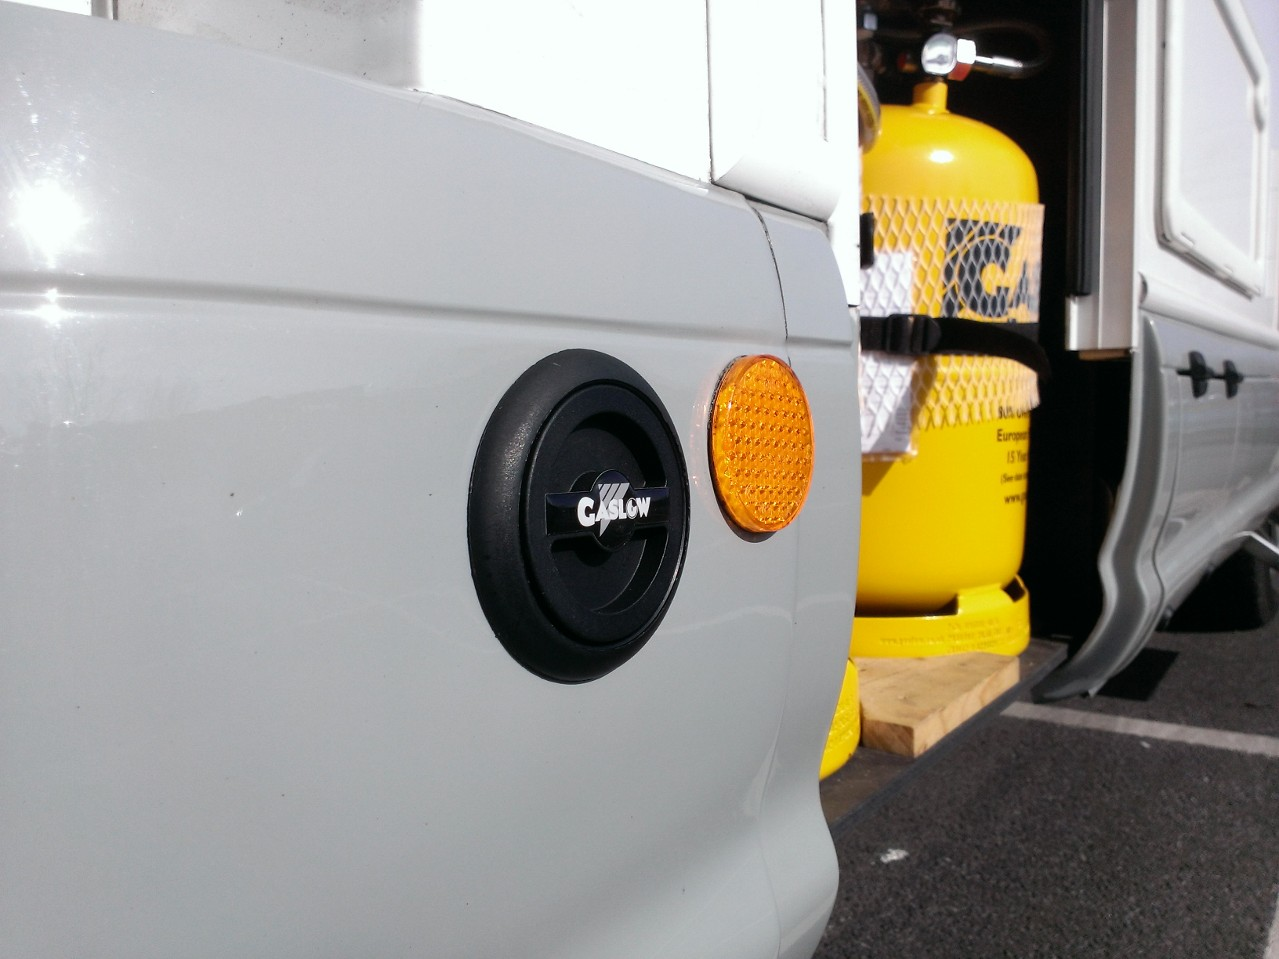 Gaslow filling kit mounted on side of motorhome